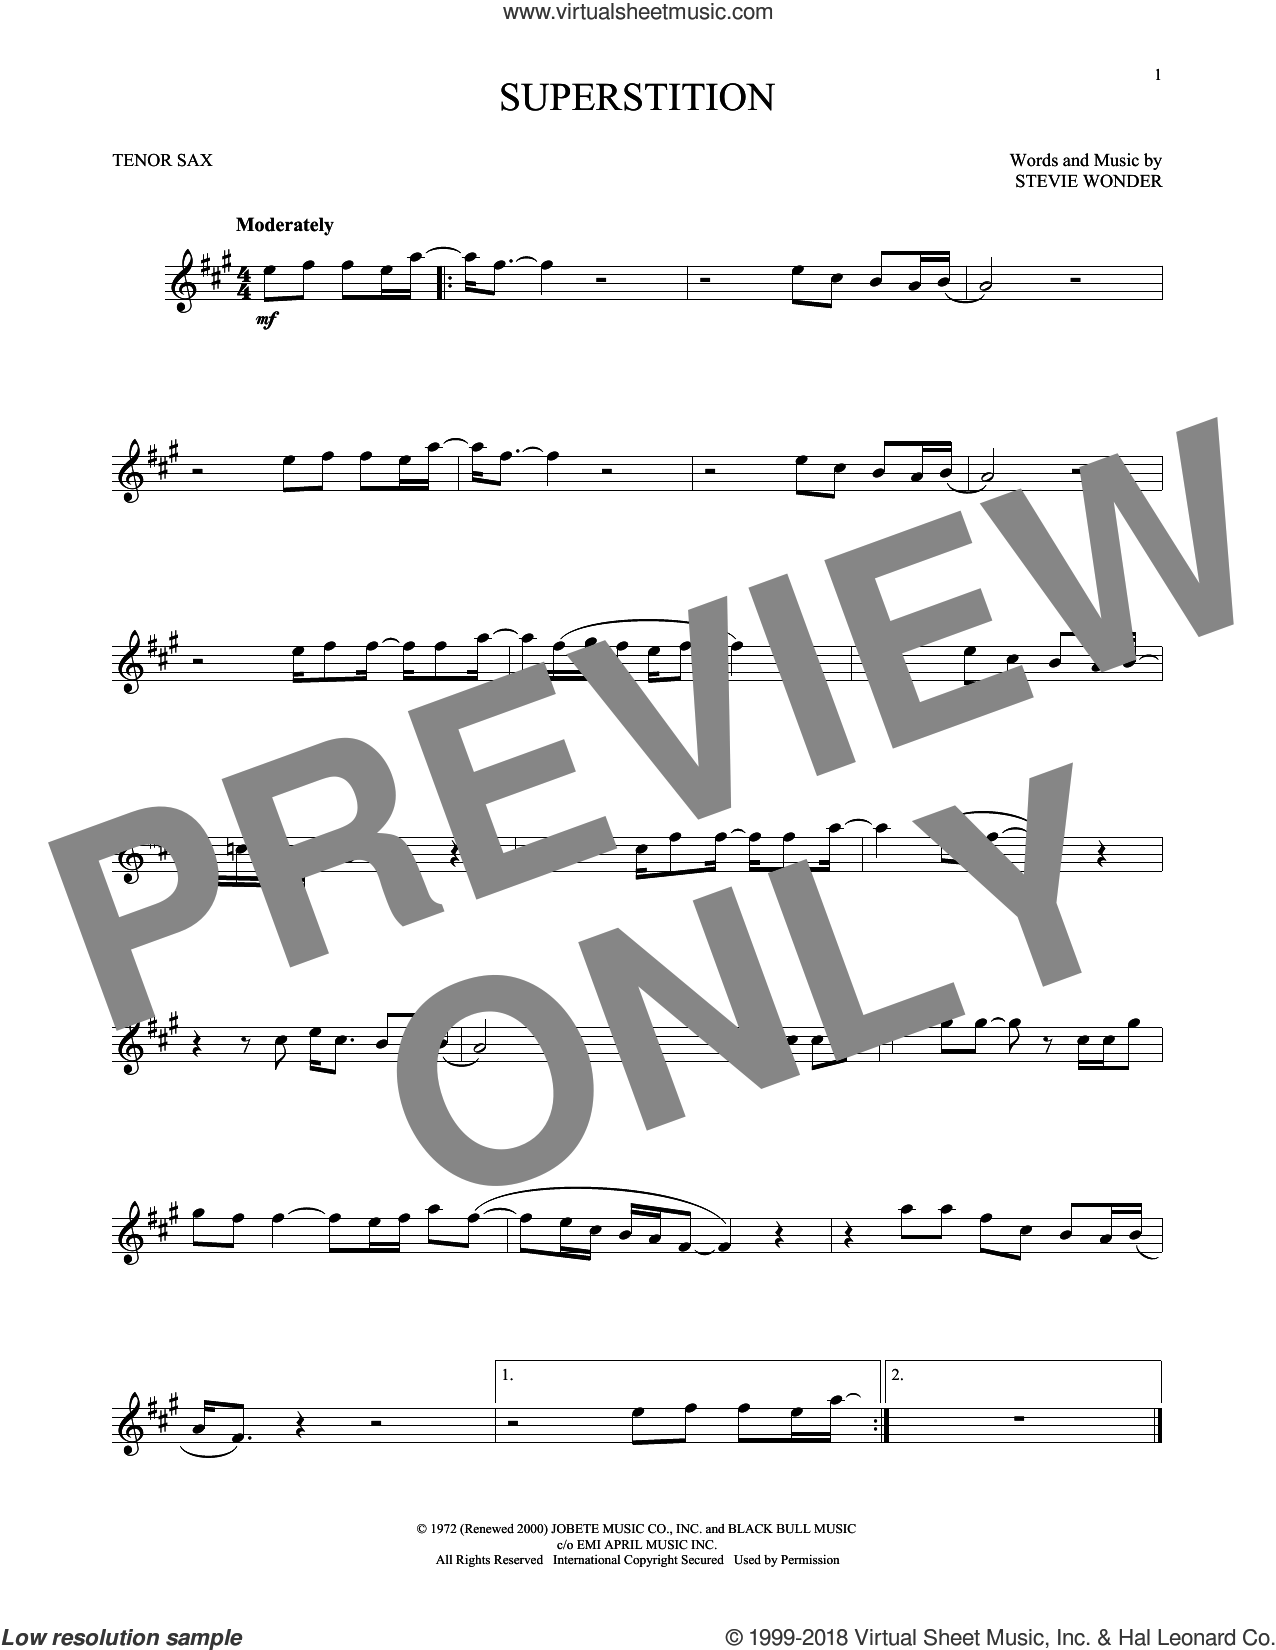 Superstition sheet music for tenor saxophone solo by Stevie Wonder, intermediate skill level